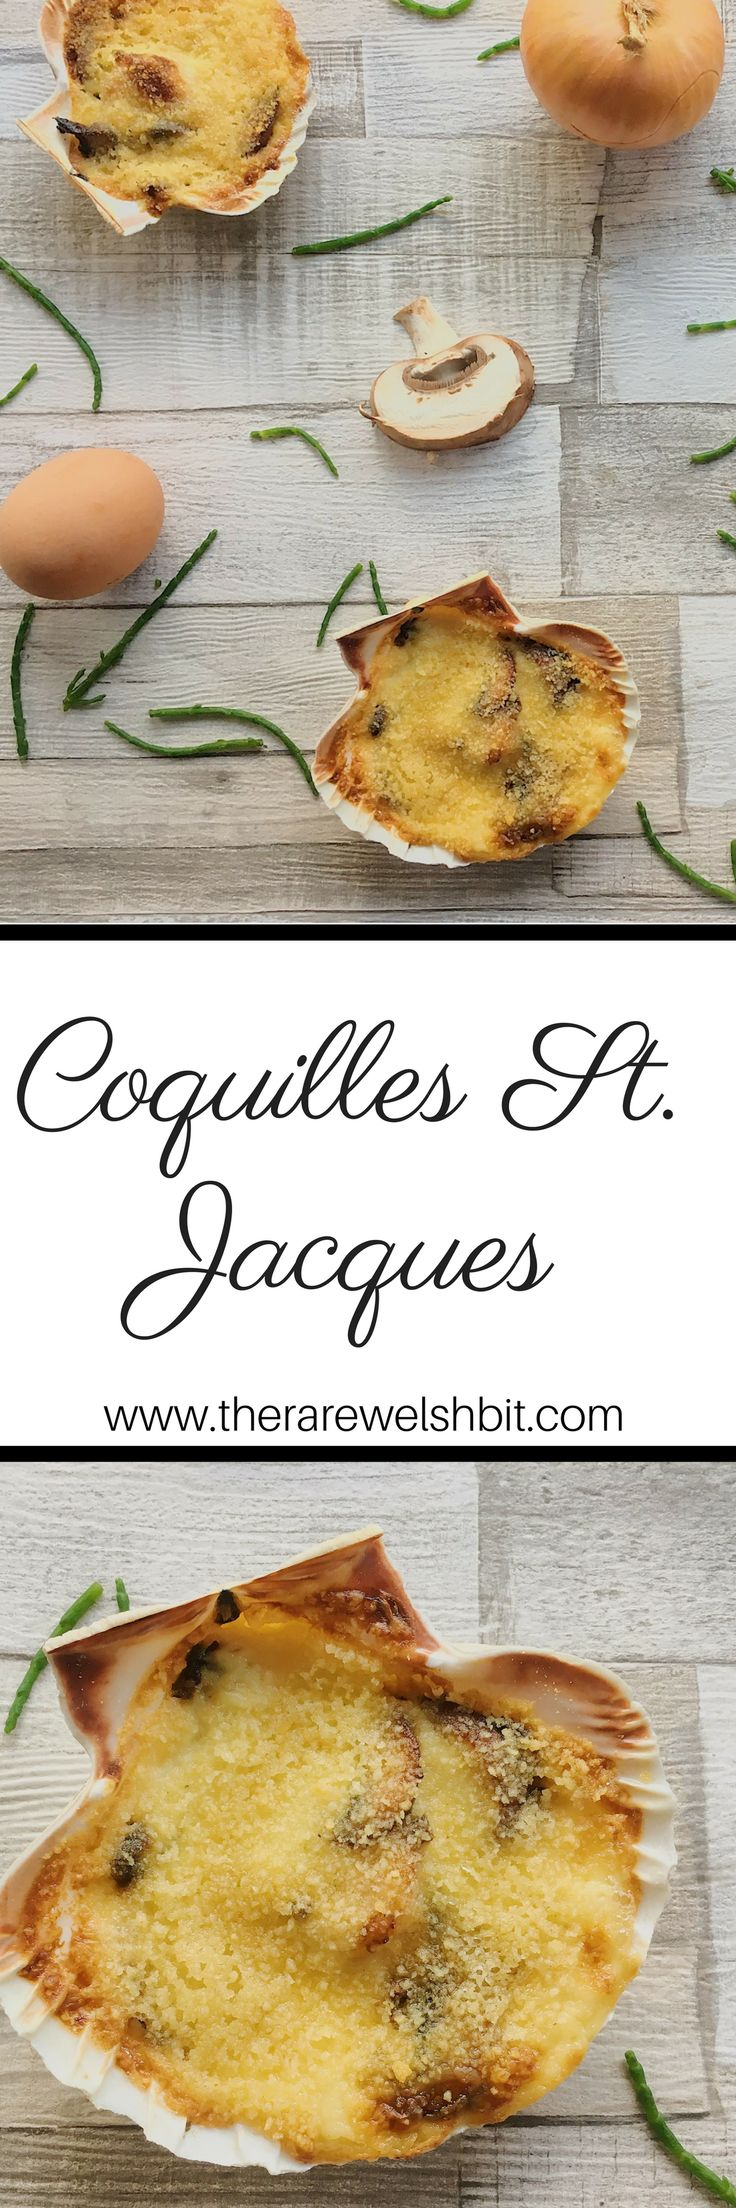 Perhaps one of the most indulgent of all French scallop recipes, Coquilles St. Jacques recipe consists of scallops in a rich, creamy white wine and mushroom sauce, topped with breadcrumbs and baked until golden. #scallops #coquillesstjacques #frenchscallops #scallopsrecipe #seafood #shellfish #f52grams #foodblogger #recipedevelopment #frenchrecipes